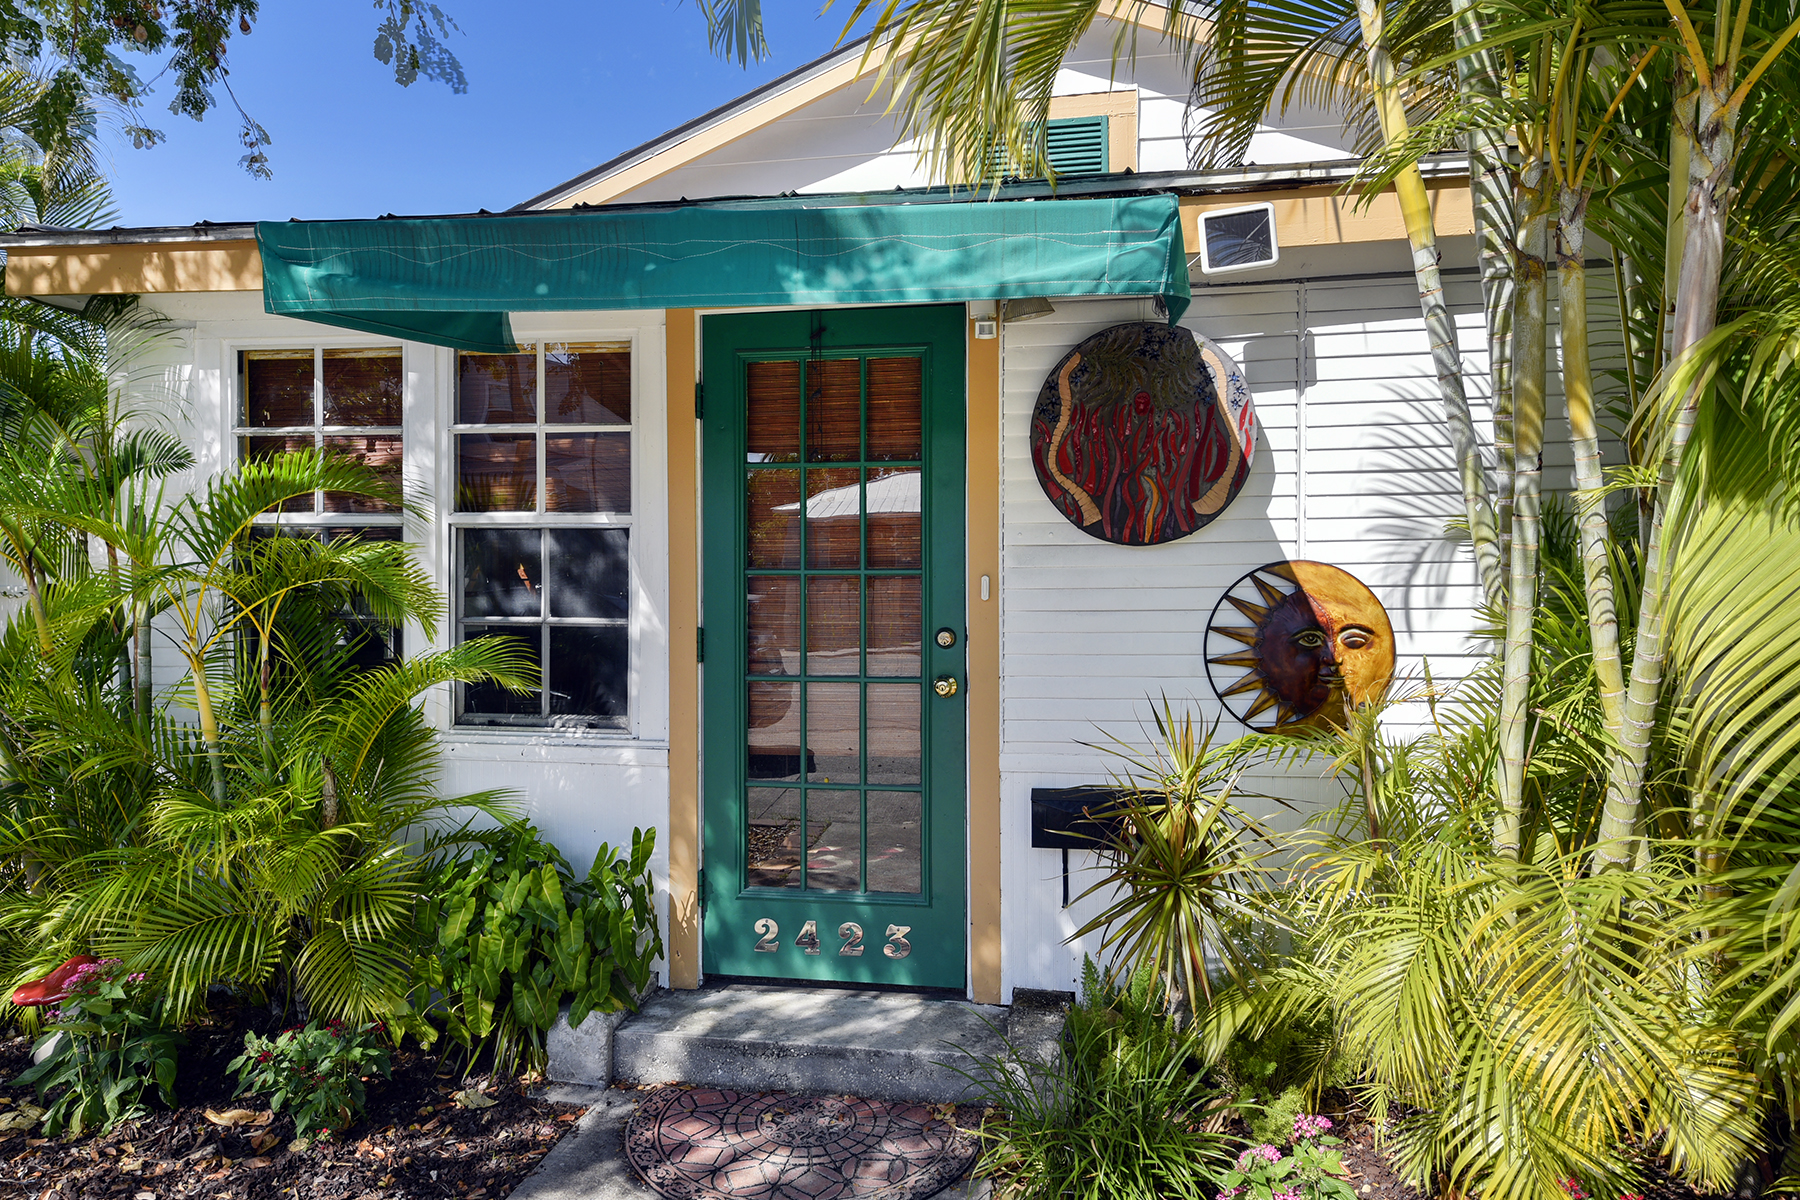 Single Family Home for Sale at Lovely Key West Home 2423 Patterson Avenue Key West, Florida 33040 United States